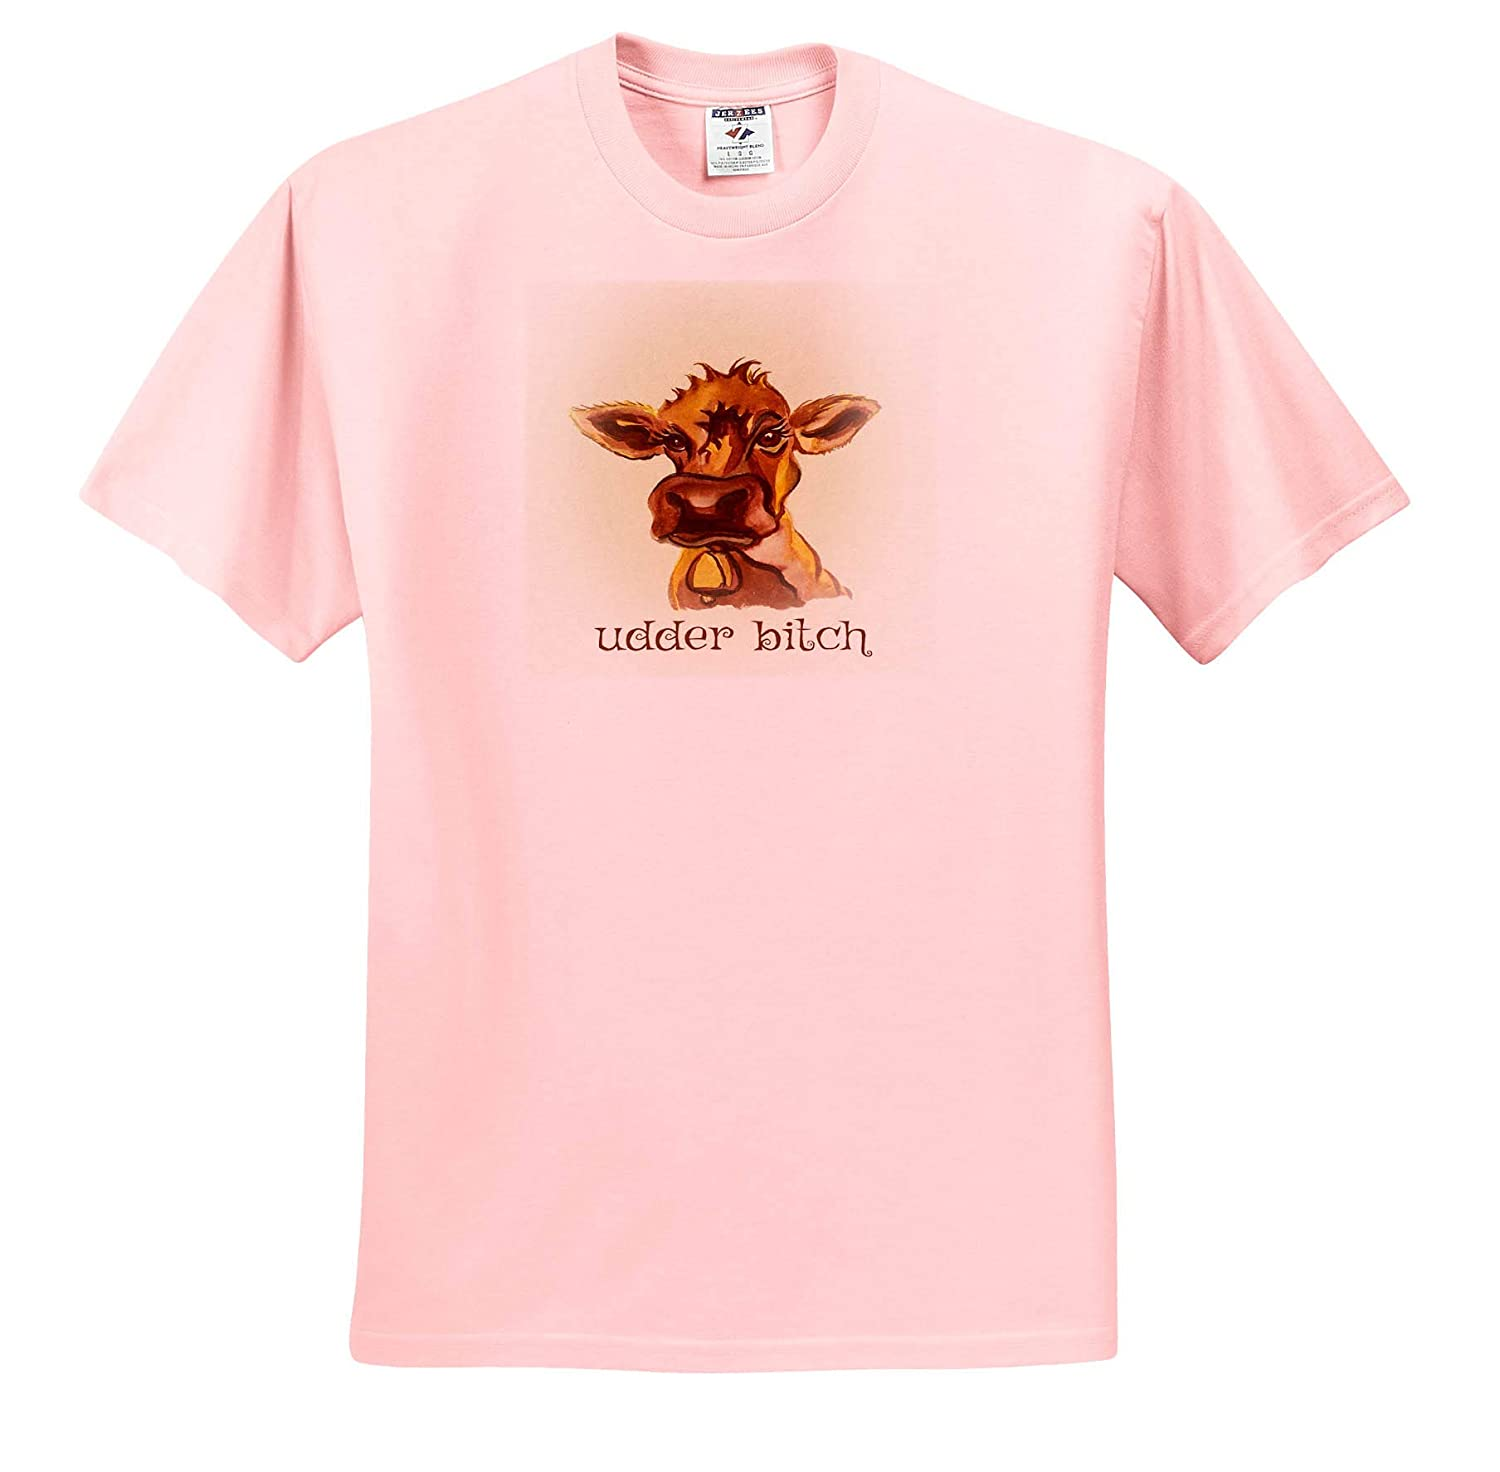 A Funny Cartoon of a Cow with Typography - T-Shirts 3dRose Art by Mandy Joy Watercolor Illustrations